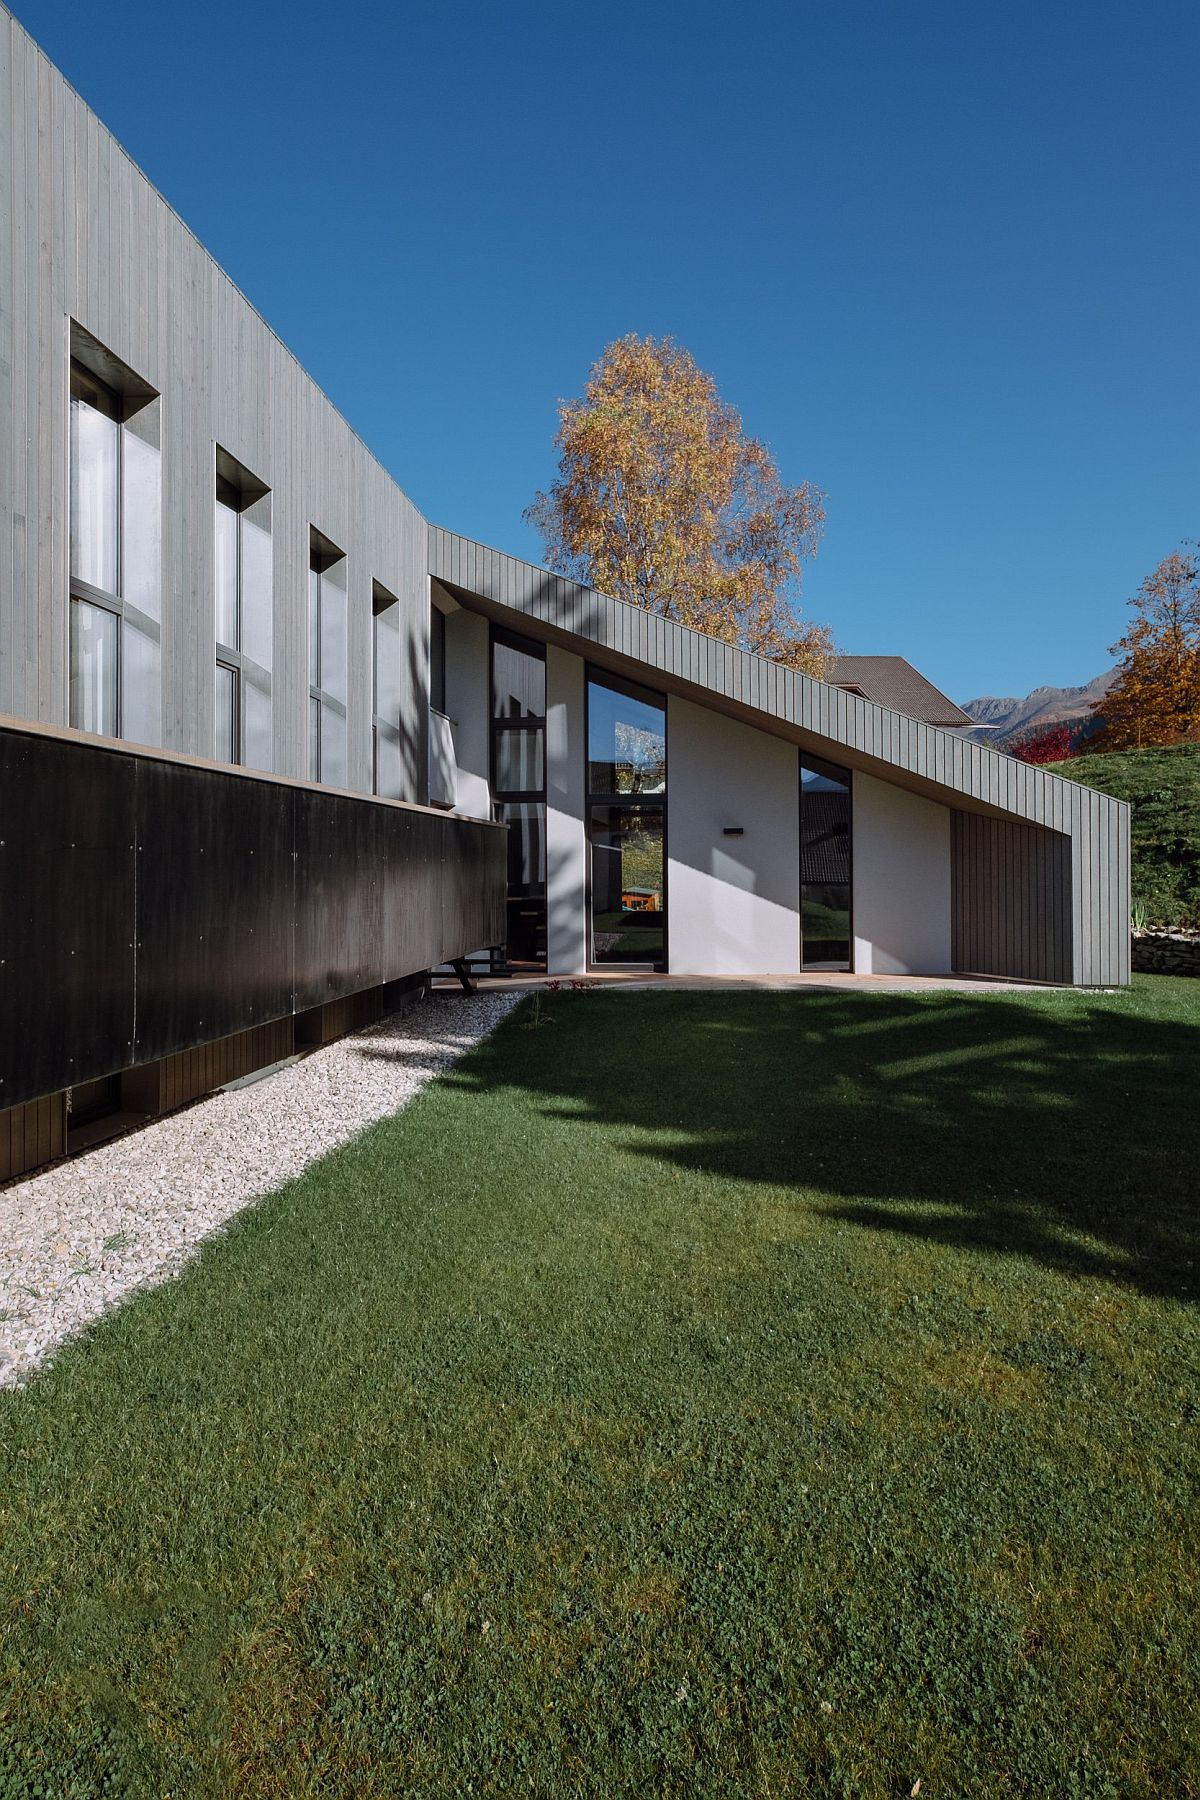 Sloped roofs and custom exterior give the home an identity of its own